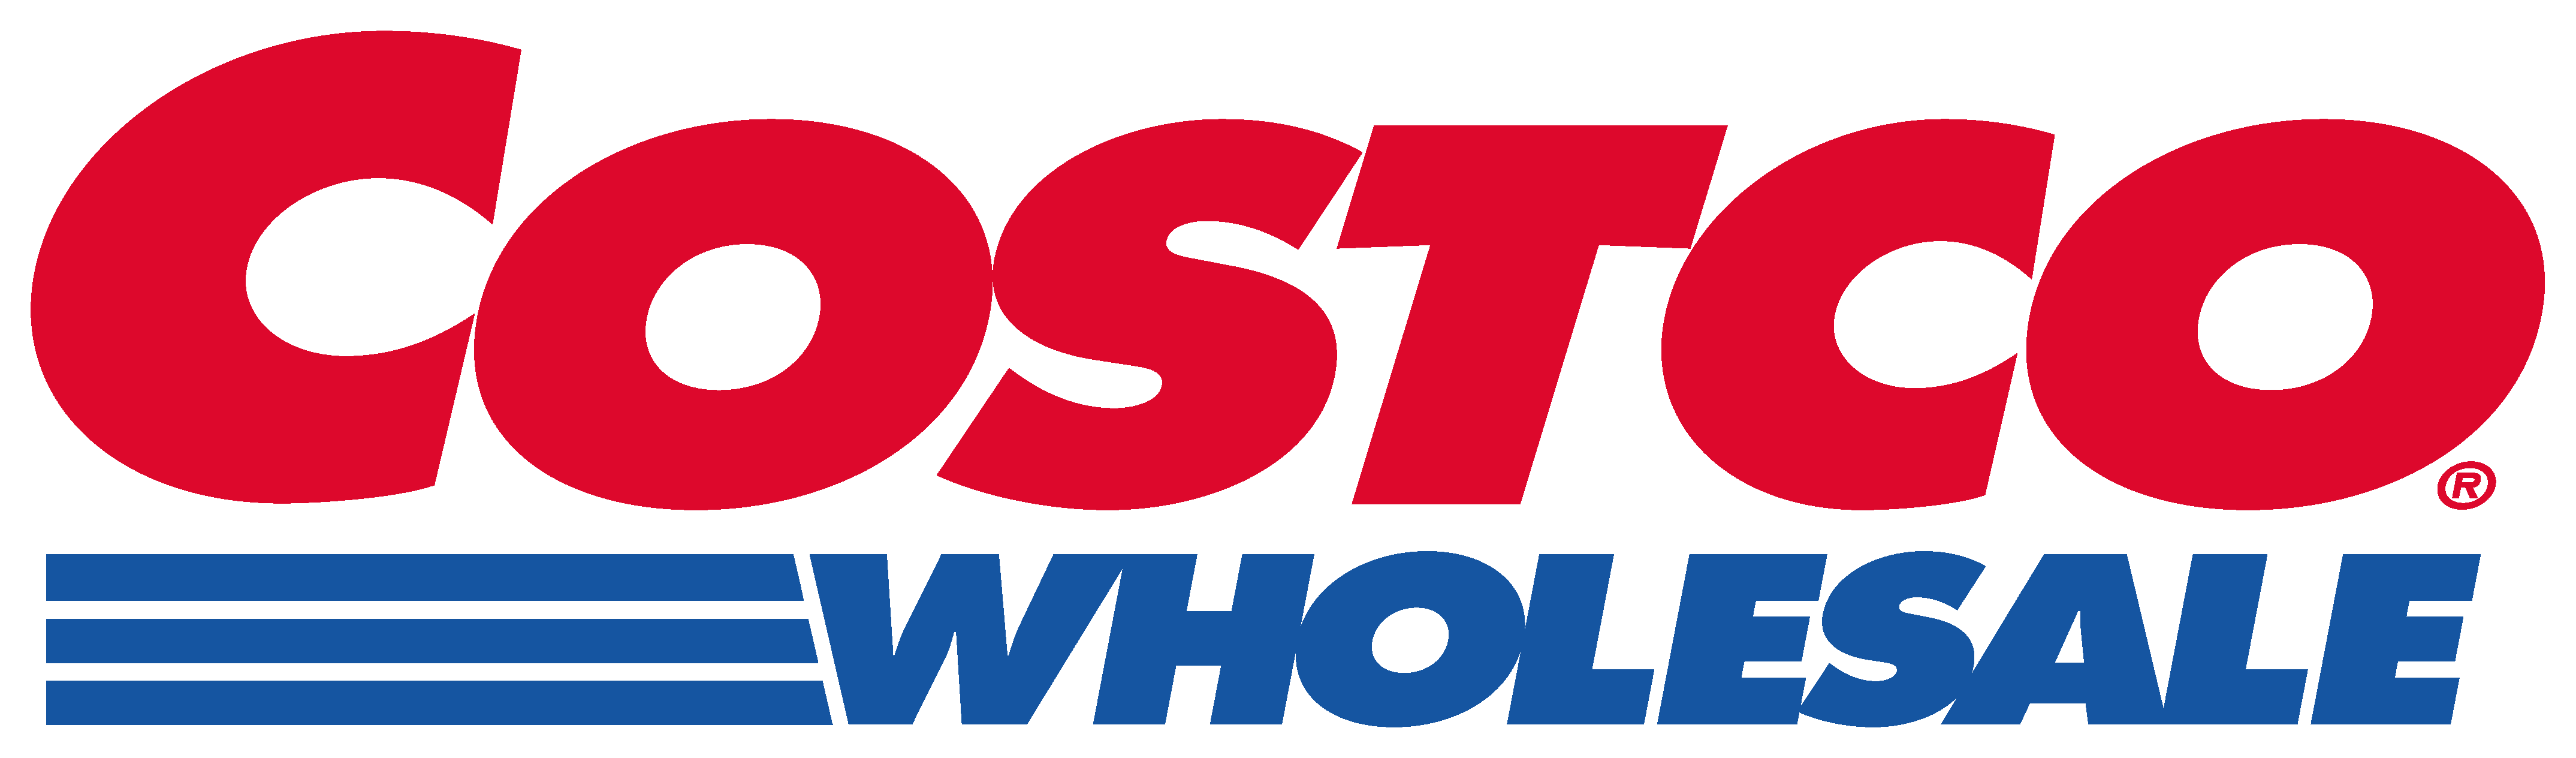 Costco Wholesale Logo png